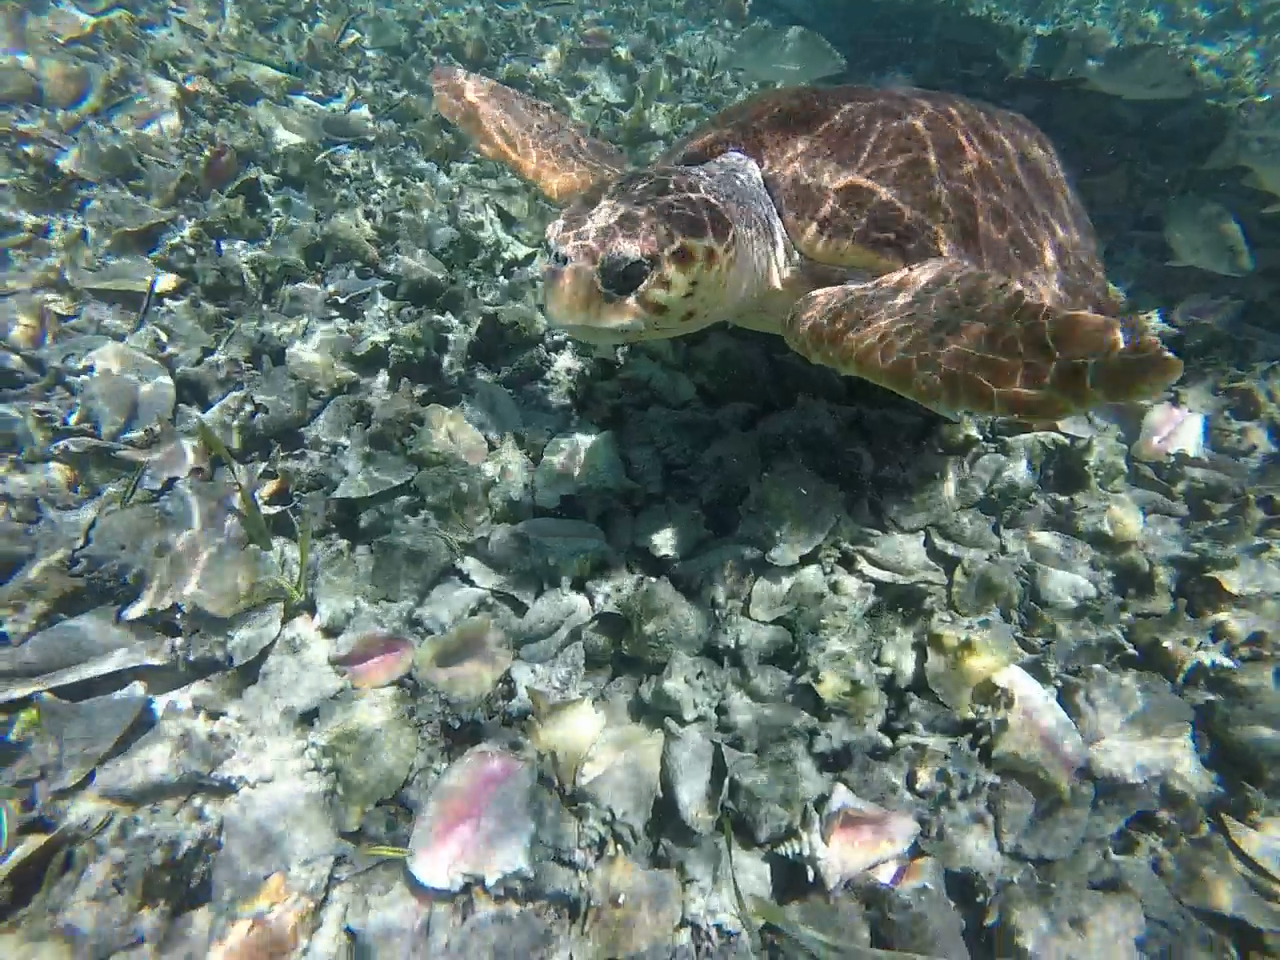 Turtle among the Conch Graveyard